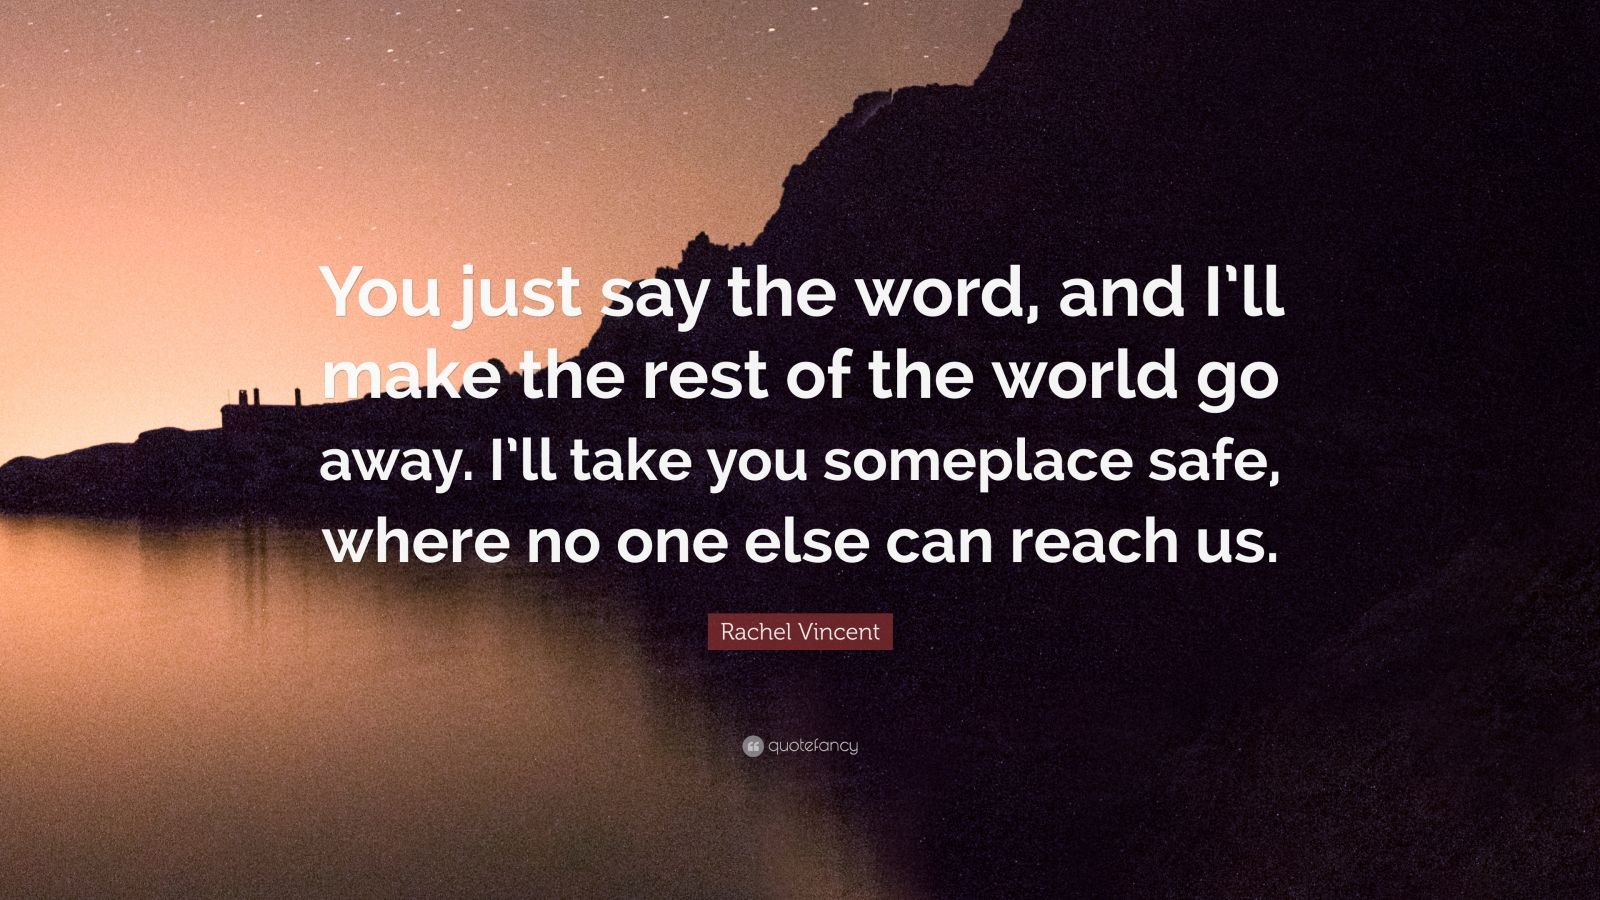 """Rachel Vincent Quote: """"You just say the word, and I'll make the rest of the world go away. I'll take you someplace safe, where no one else can reach us."""""""